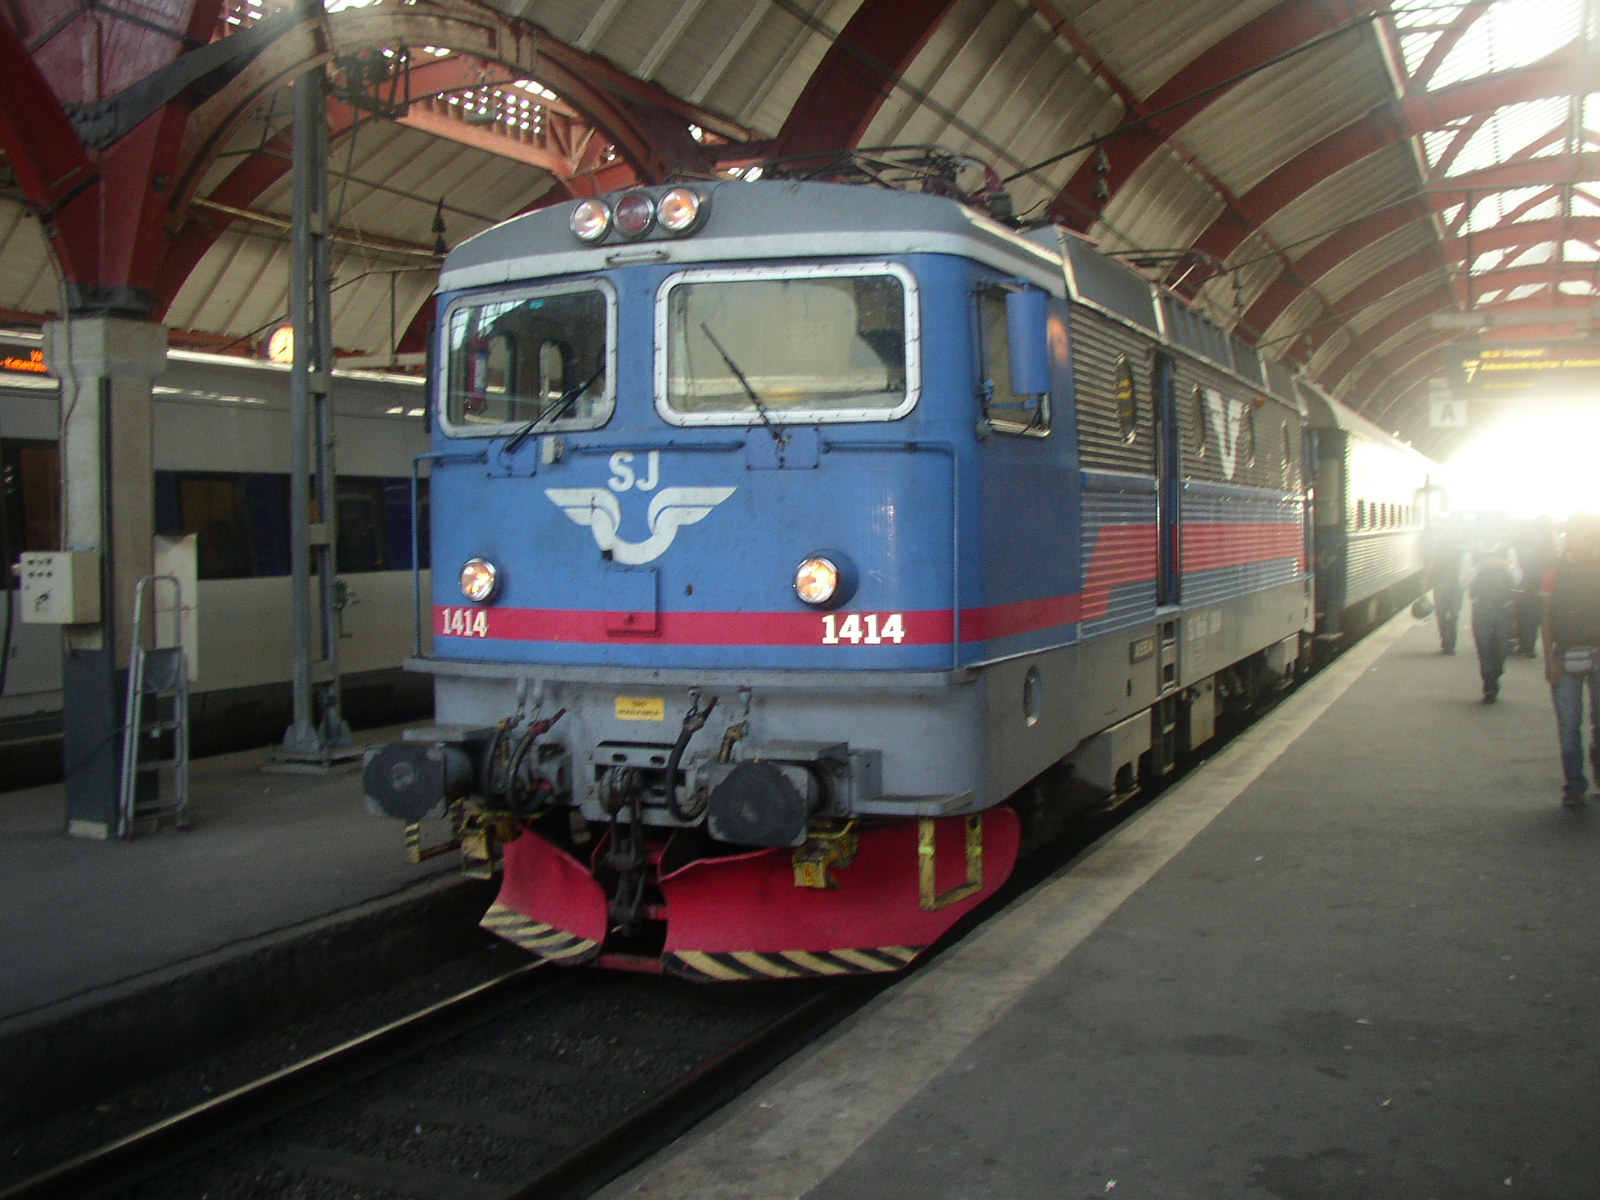 File:Locomotive-1414-SJ.jpg